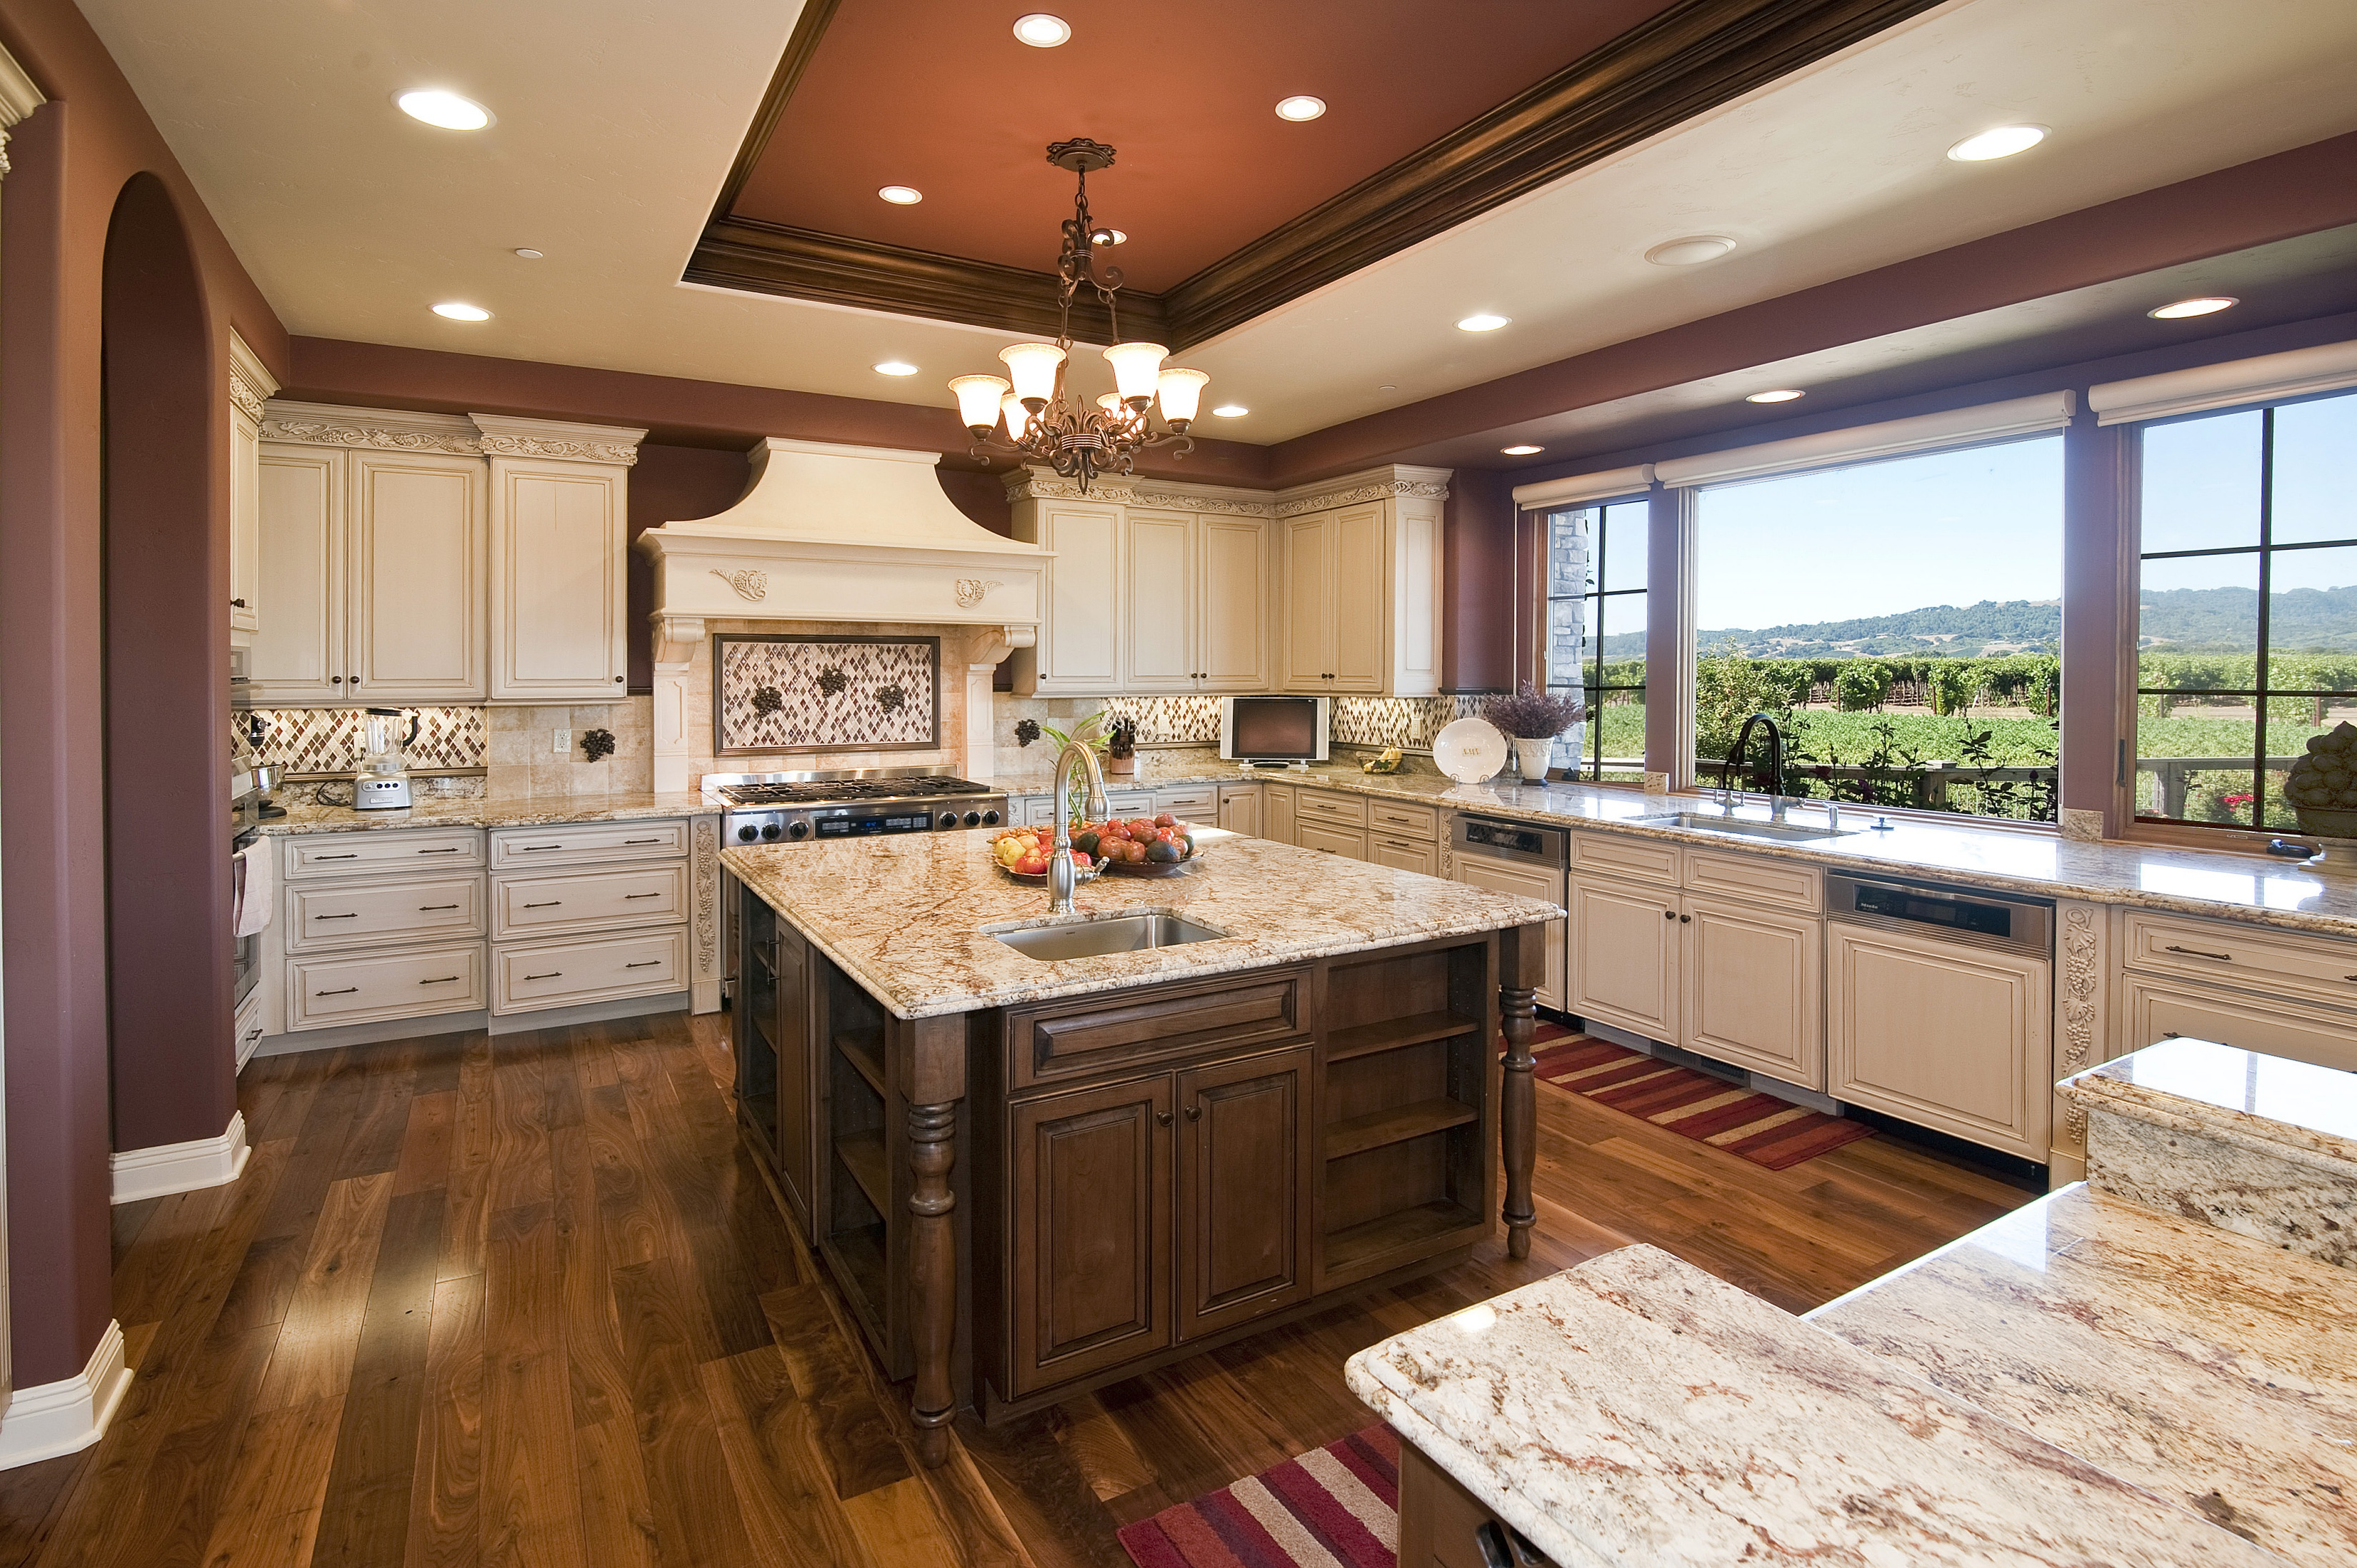 Luxury Buyers Looking For Chef S Kitchen Spacious Views California Real Estate Blog